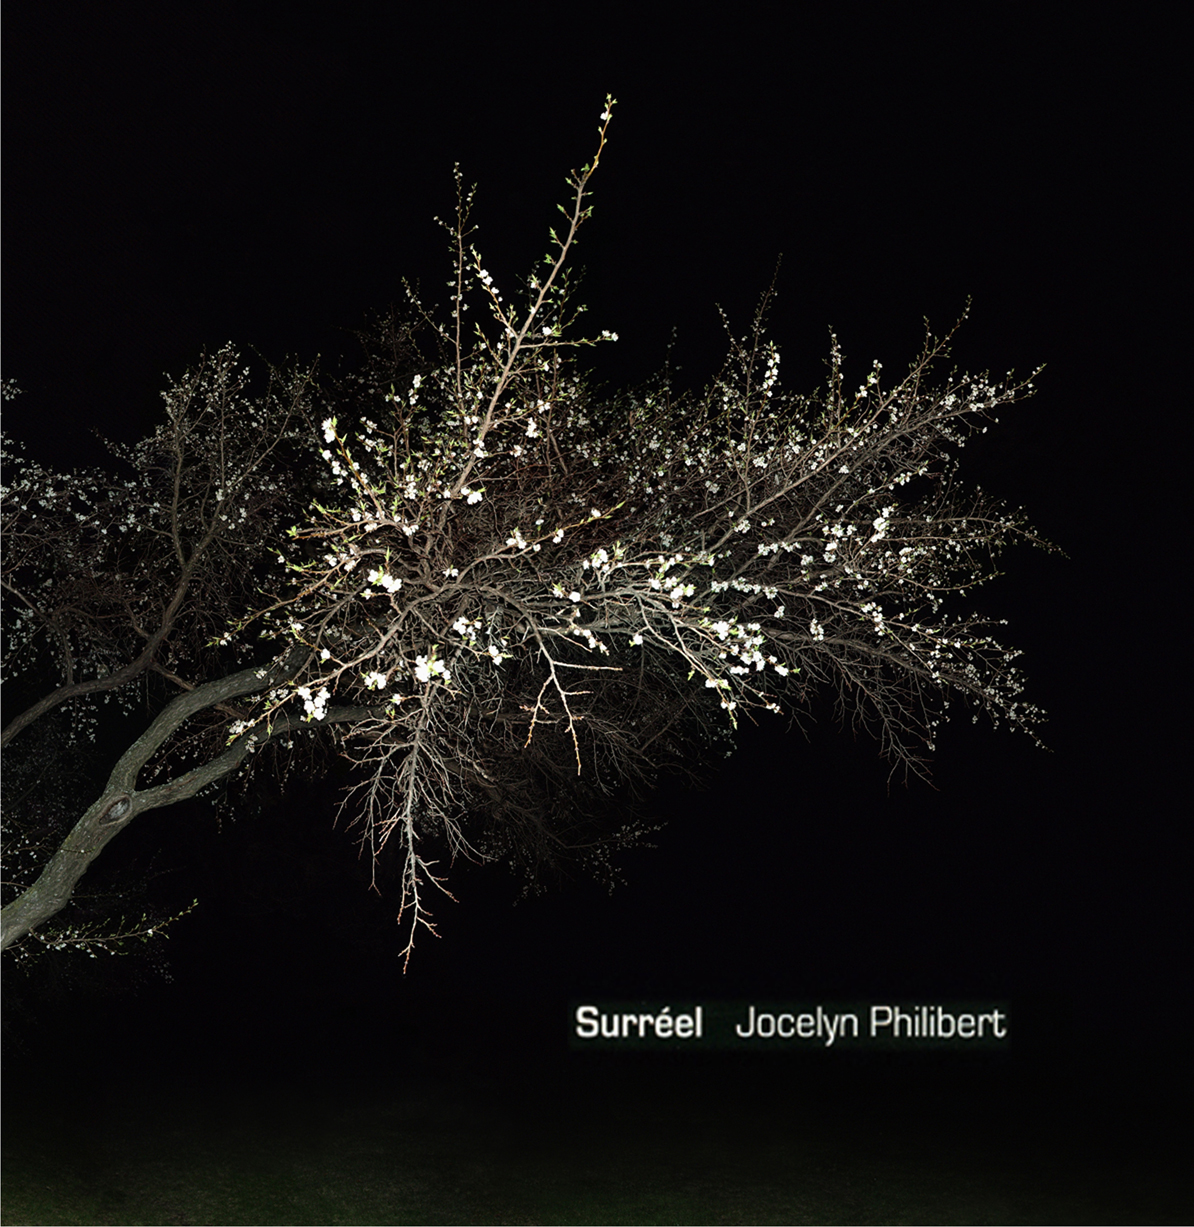 jocelyn philibert Des arbres dans la nuit<br />Trees in the Night